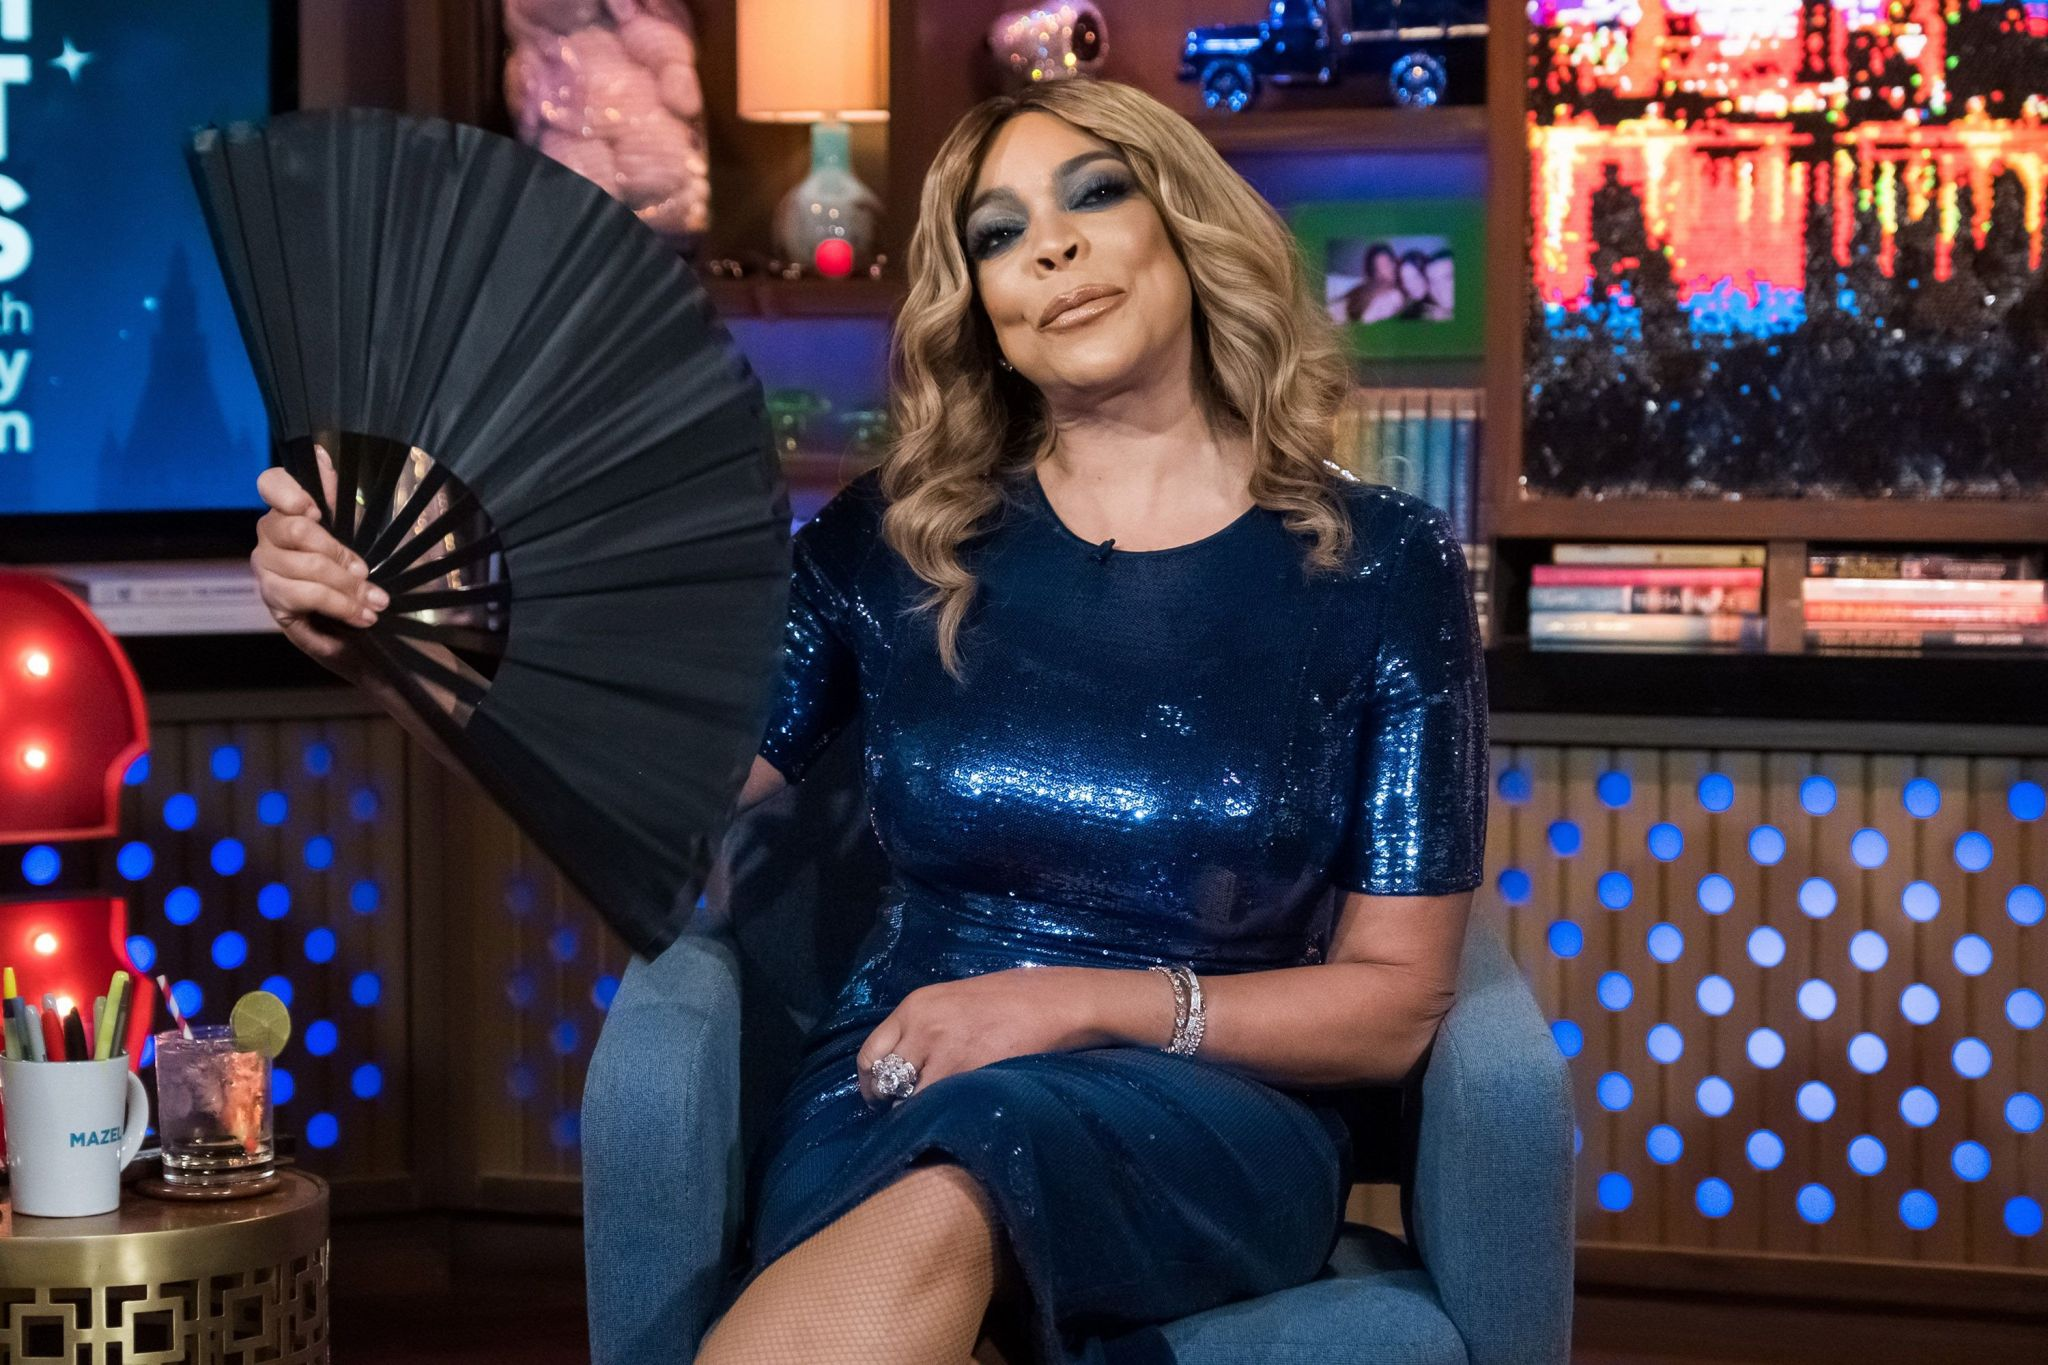 Tearful Wendy Williams apologizes for saying gay men shouldn't wear female clothes